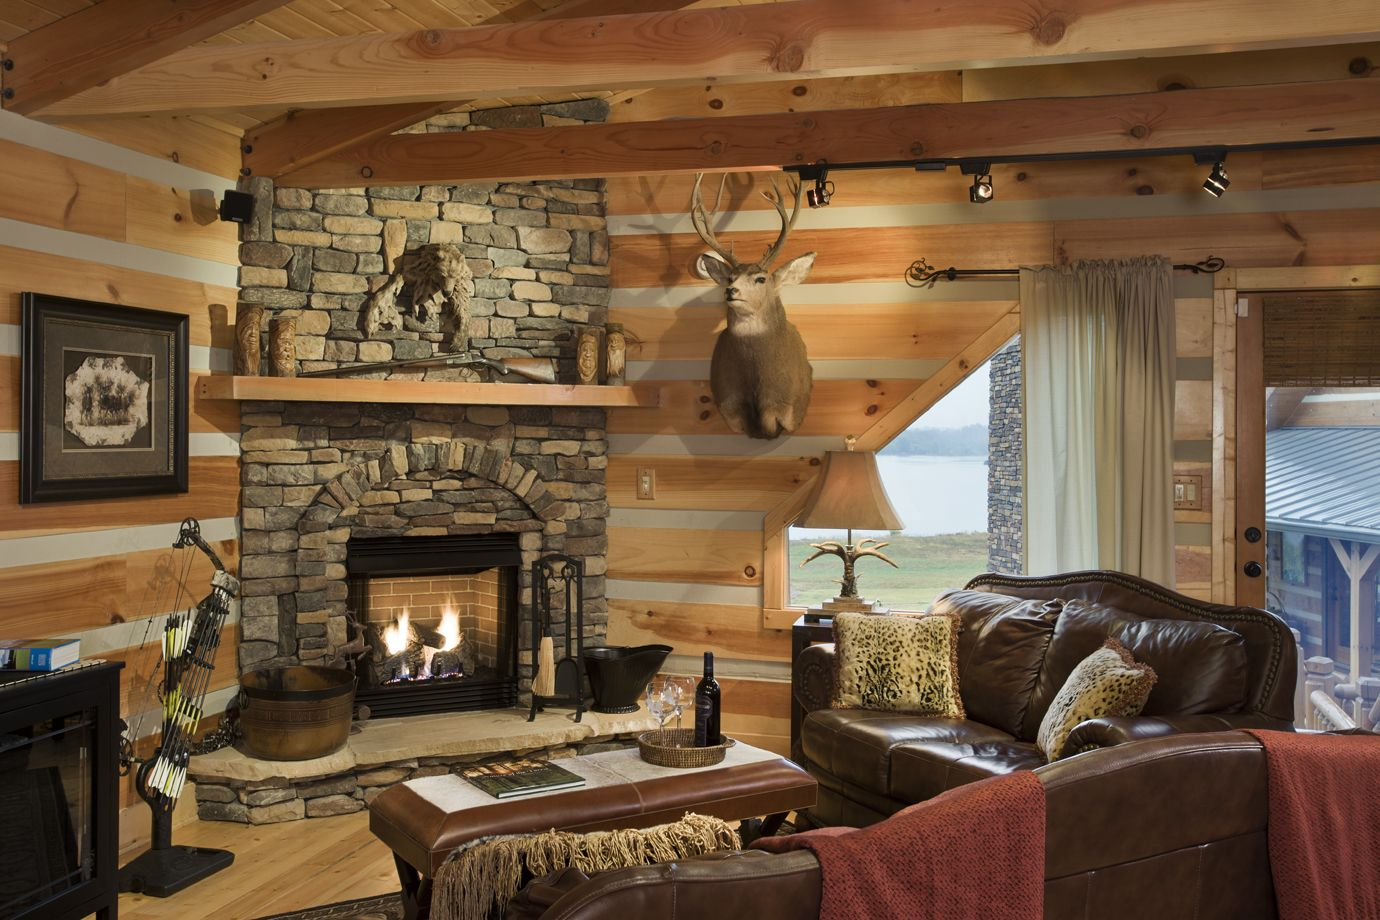 Honest Abe Log Homes Has Manufactured Thousands Of Log Homes Since We Are  One Of The Countries Largest Custom Log Home Designers And Builders.